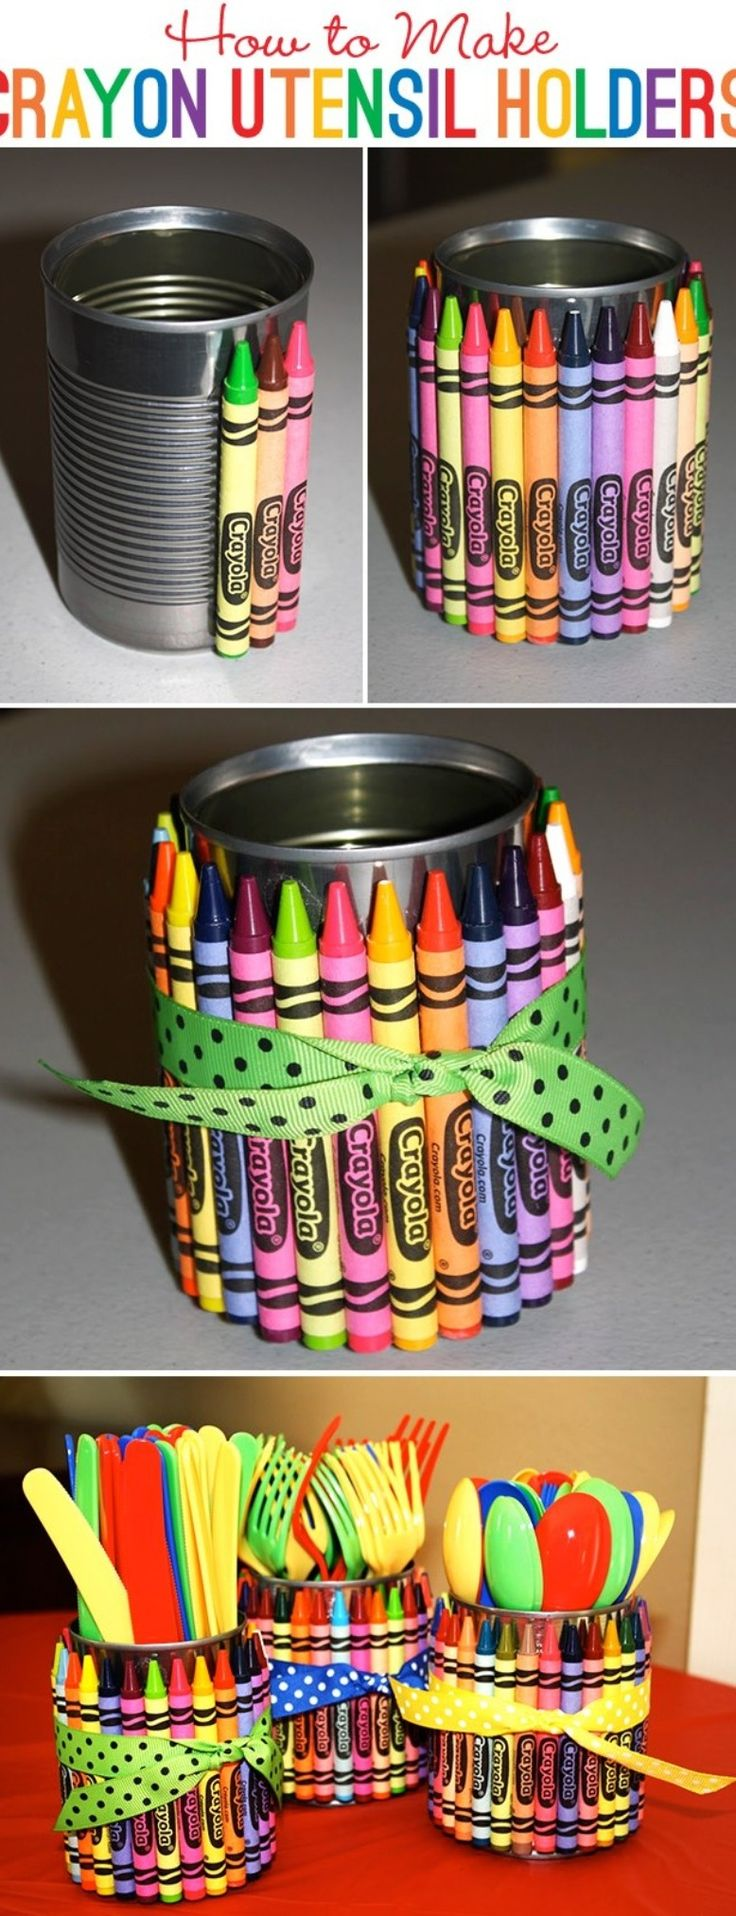 crayon utensil/pen holders. Can also use a glass votive for candle holder.